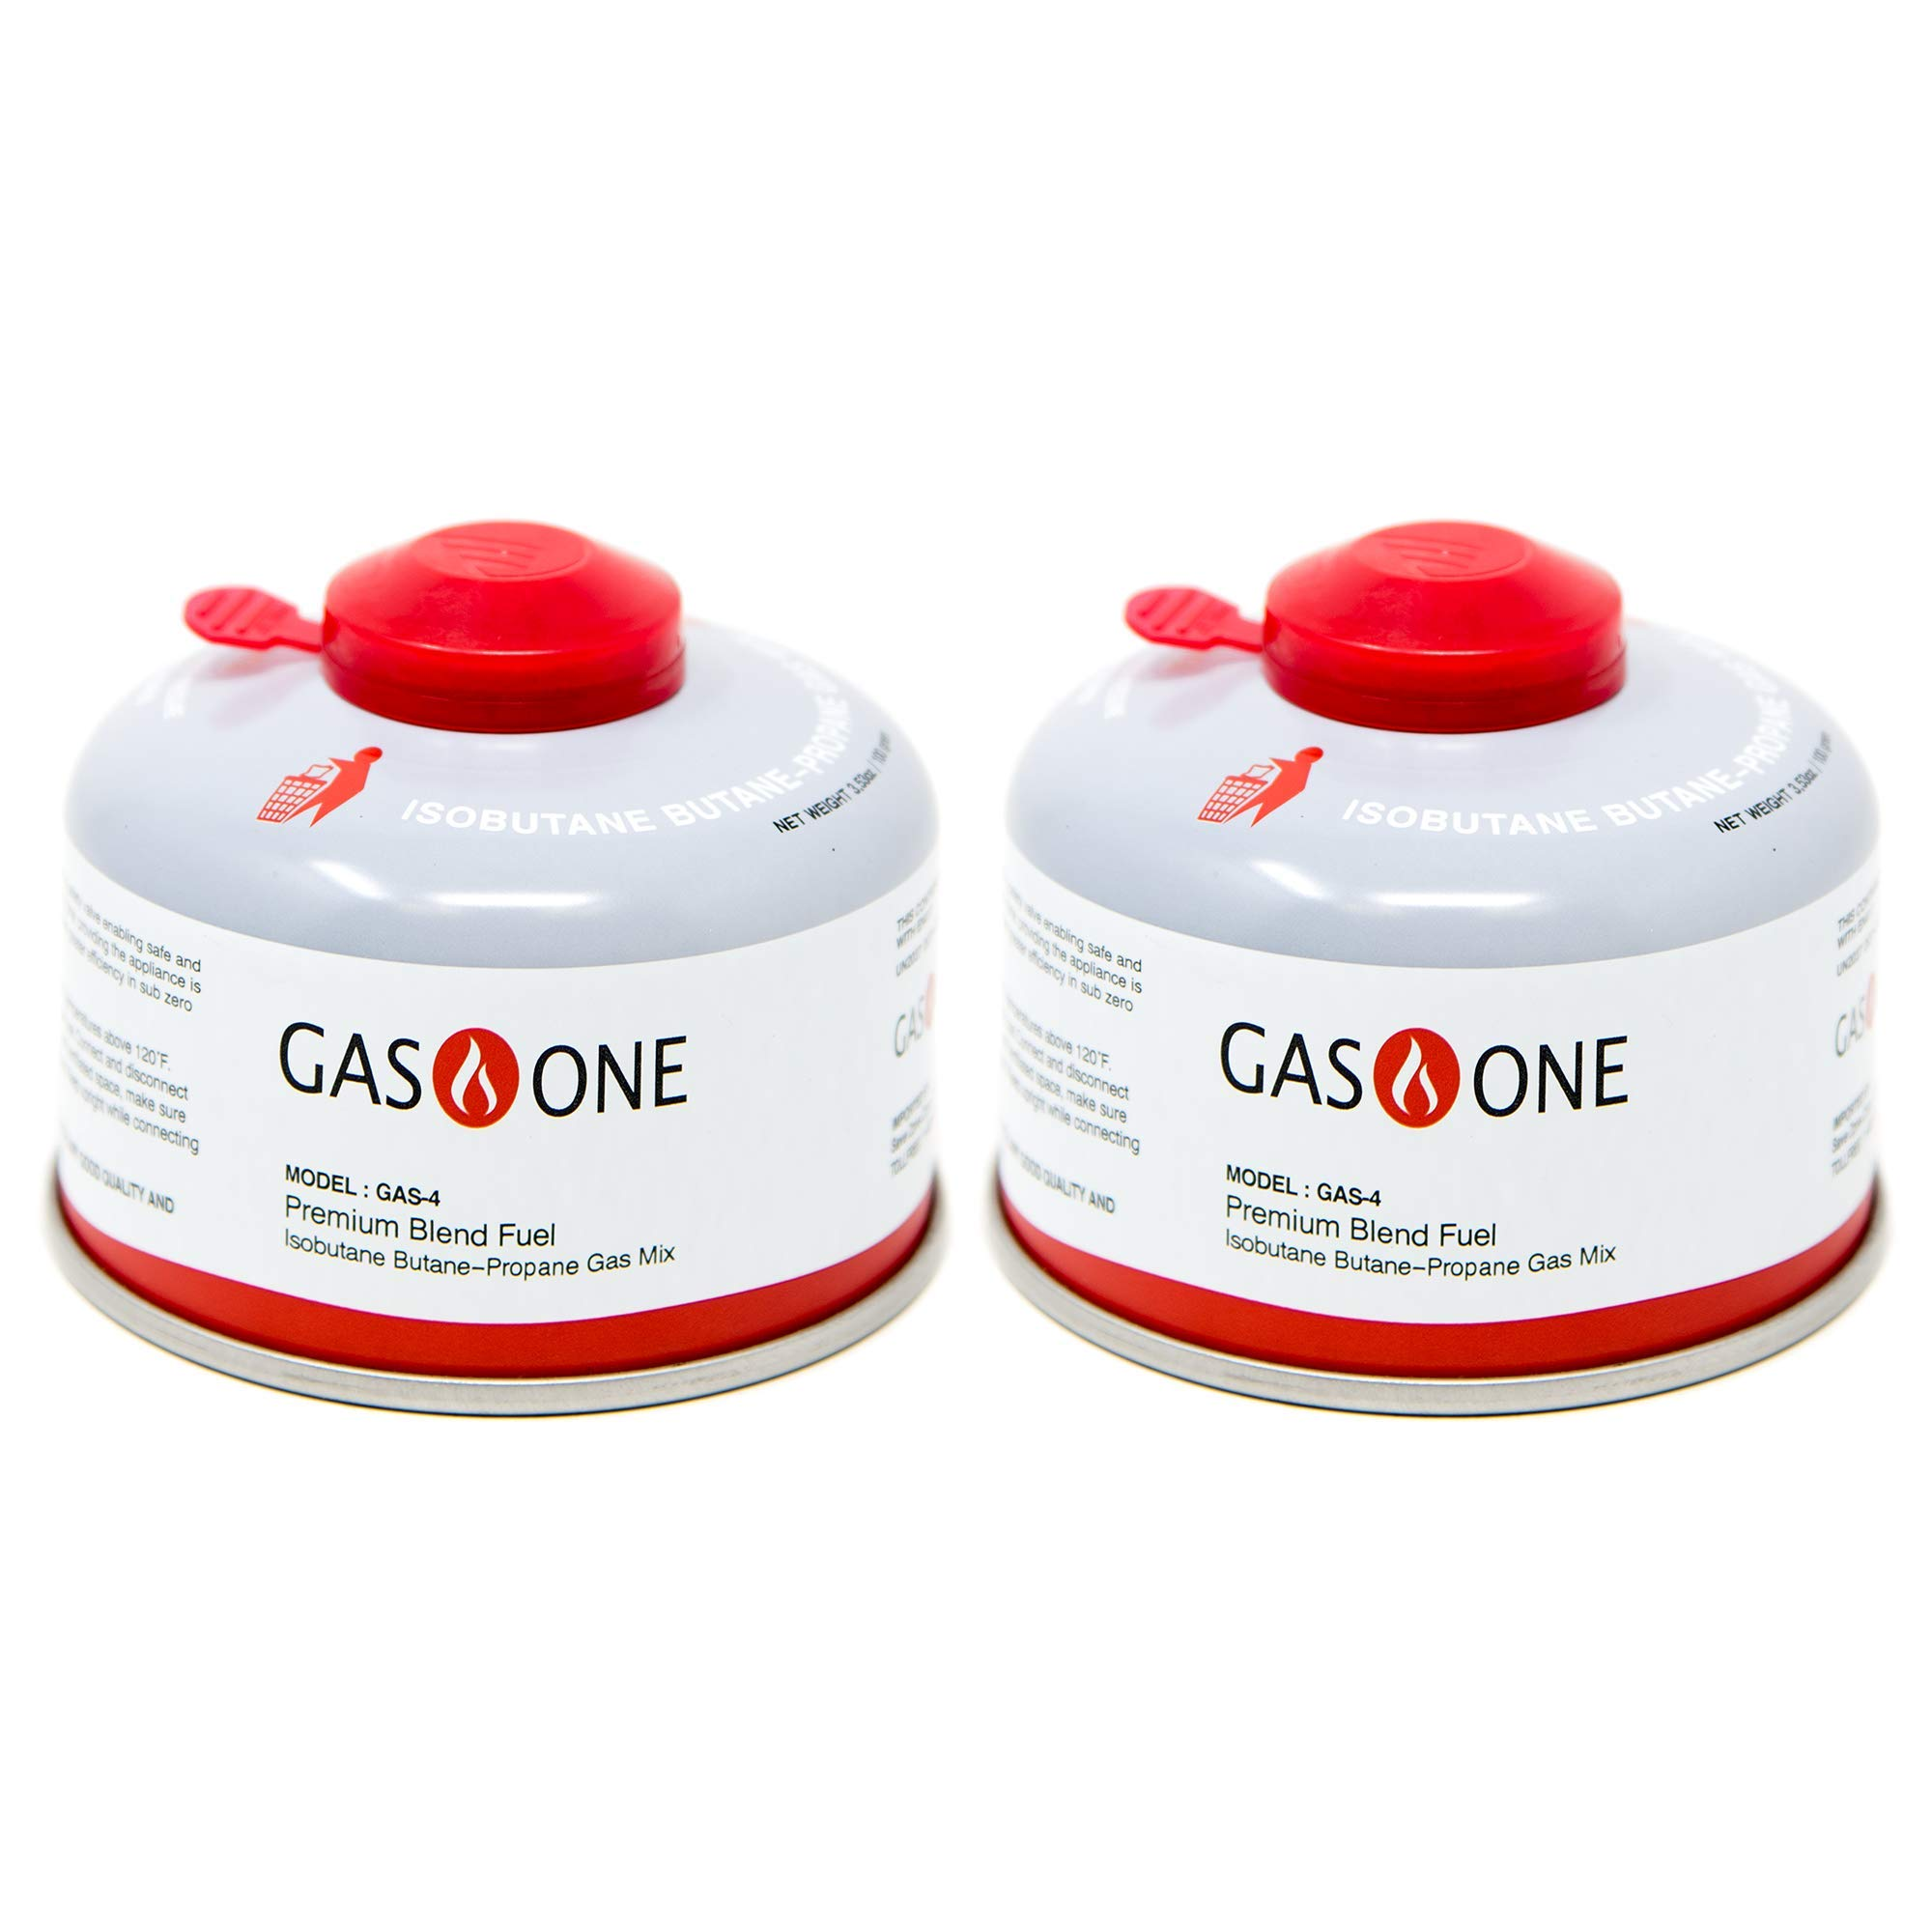 GasOne Camping Fuel Blend Isobutane Fuel Canister 100g (2 Pack) by GasOne